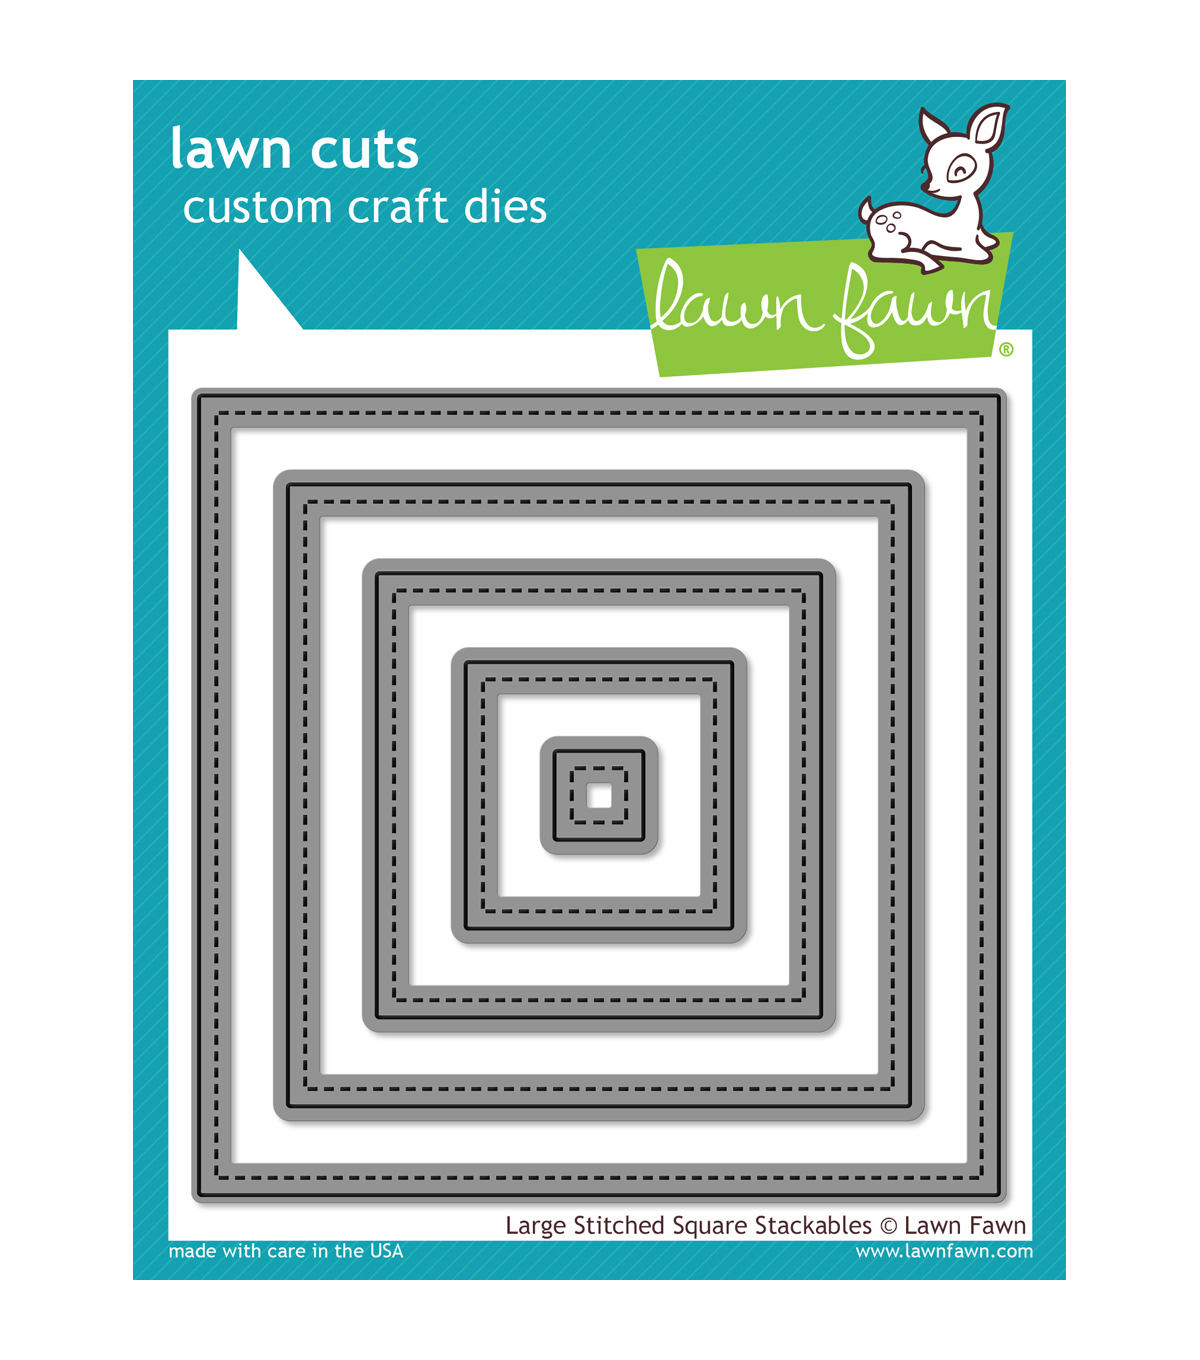 Lawn Fawn Lawn Cuts Custom Craft Die -Large Stitched Square Stackables